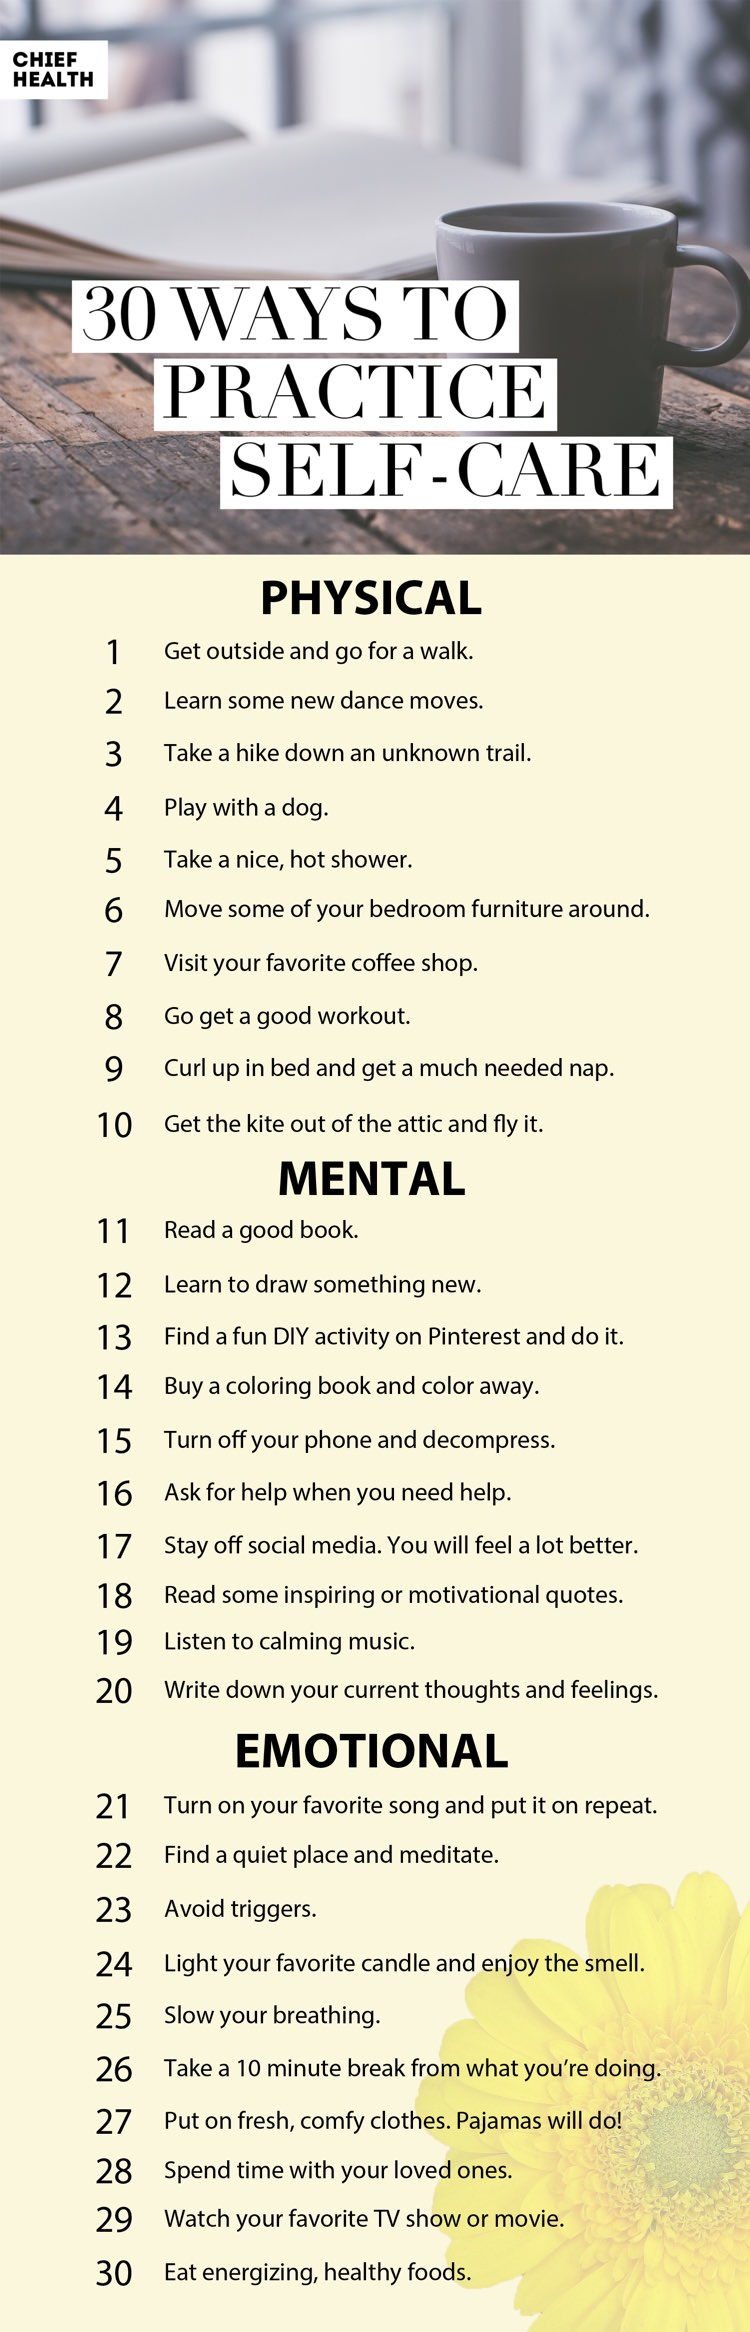 30 Ways to Practice Self-Care: Self-care is important, and too many of us neglect our own needs while we attend to others' needs. This list is a reminder of types of physical, mental, and emotional self-care everyone should be doing to live a better life and feel happier.